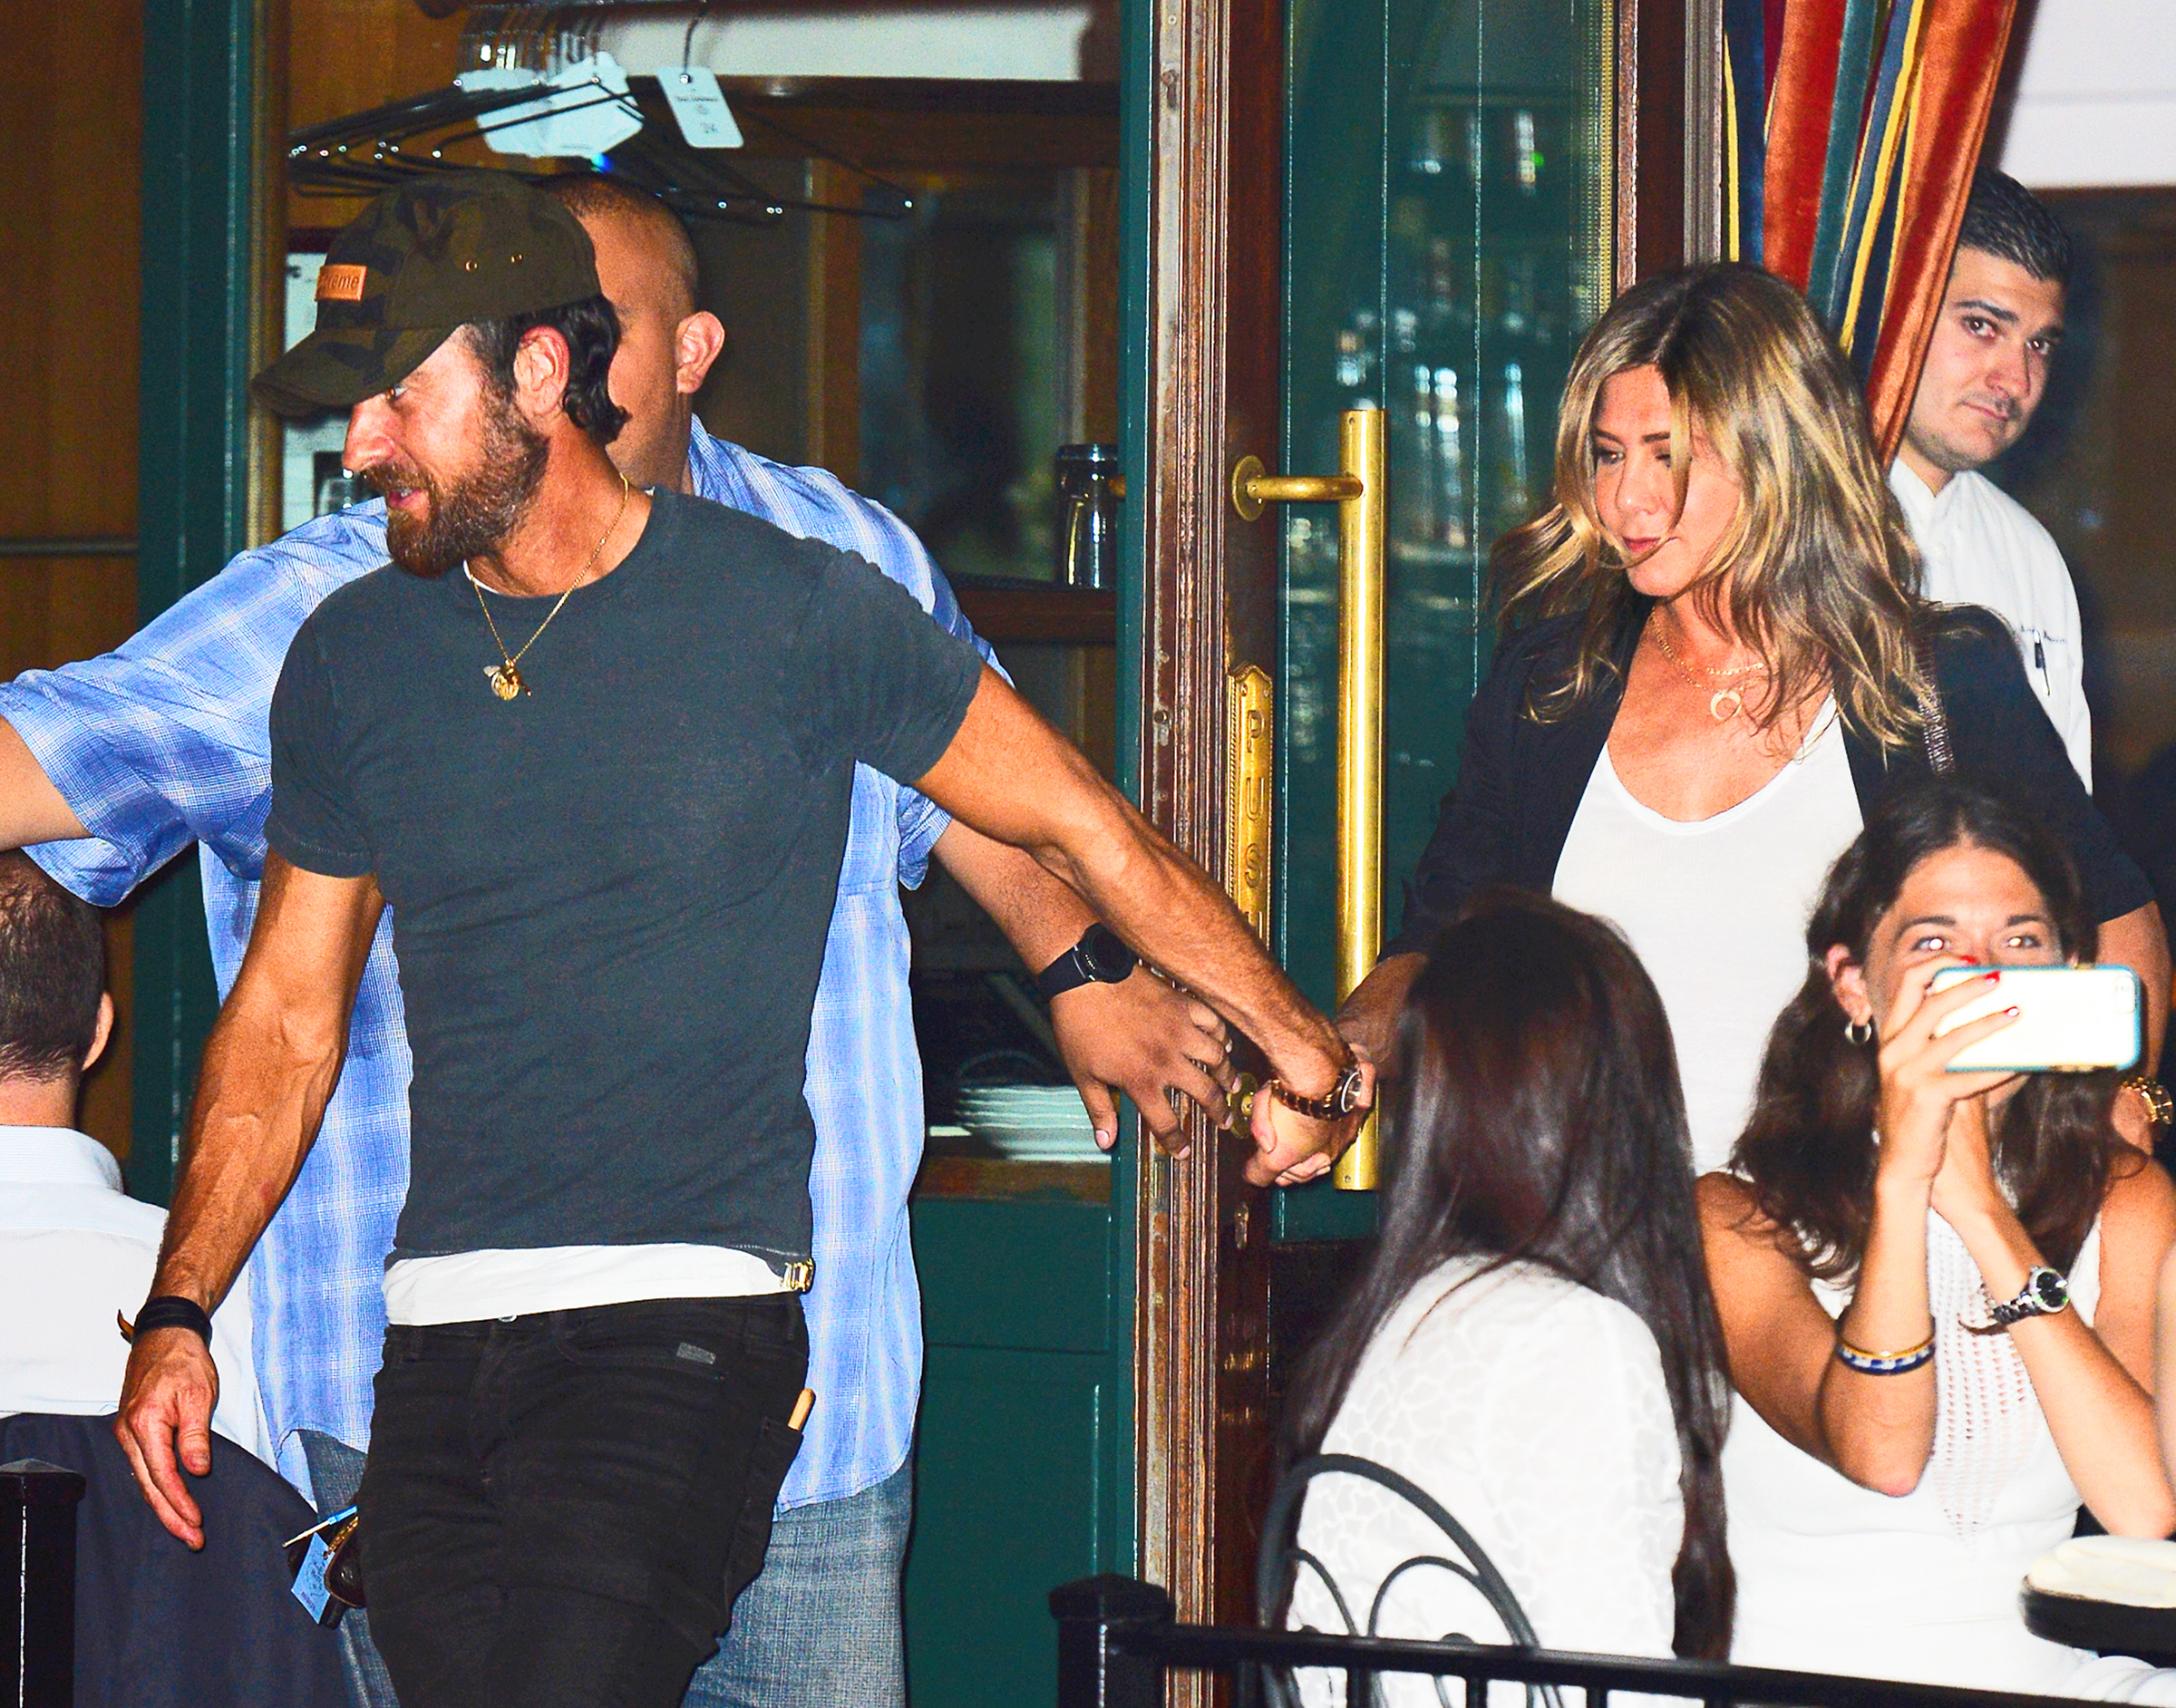 Jennifer Aniston and Justin Theroux are hand in hand as they leave Sant Ambroeus restaurant in New York City.  <P> Pictured: Jennifer Aniston and Justin Theroux <B>Ref: SPL1540887  190717  </B><BR/> Picture by: Splash News<BR/> </P><P> <B>Splash News and Pictures</B><BR/> Los Angeles:310-821-2666<BR/> New York:212-619-2666<BR/> London:870-934-2666<BR/> <span id=